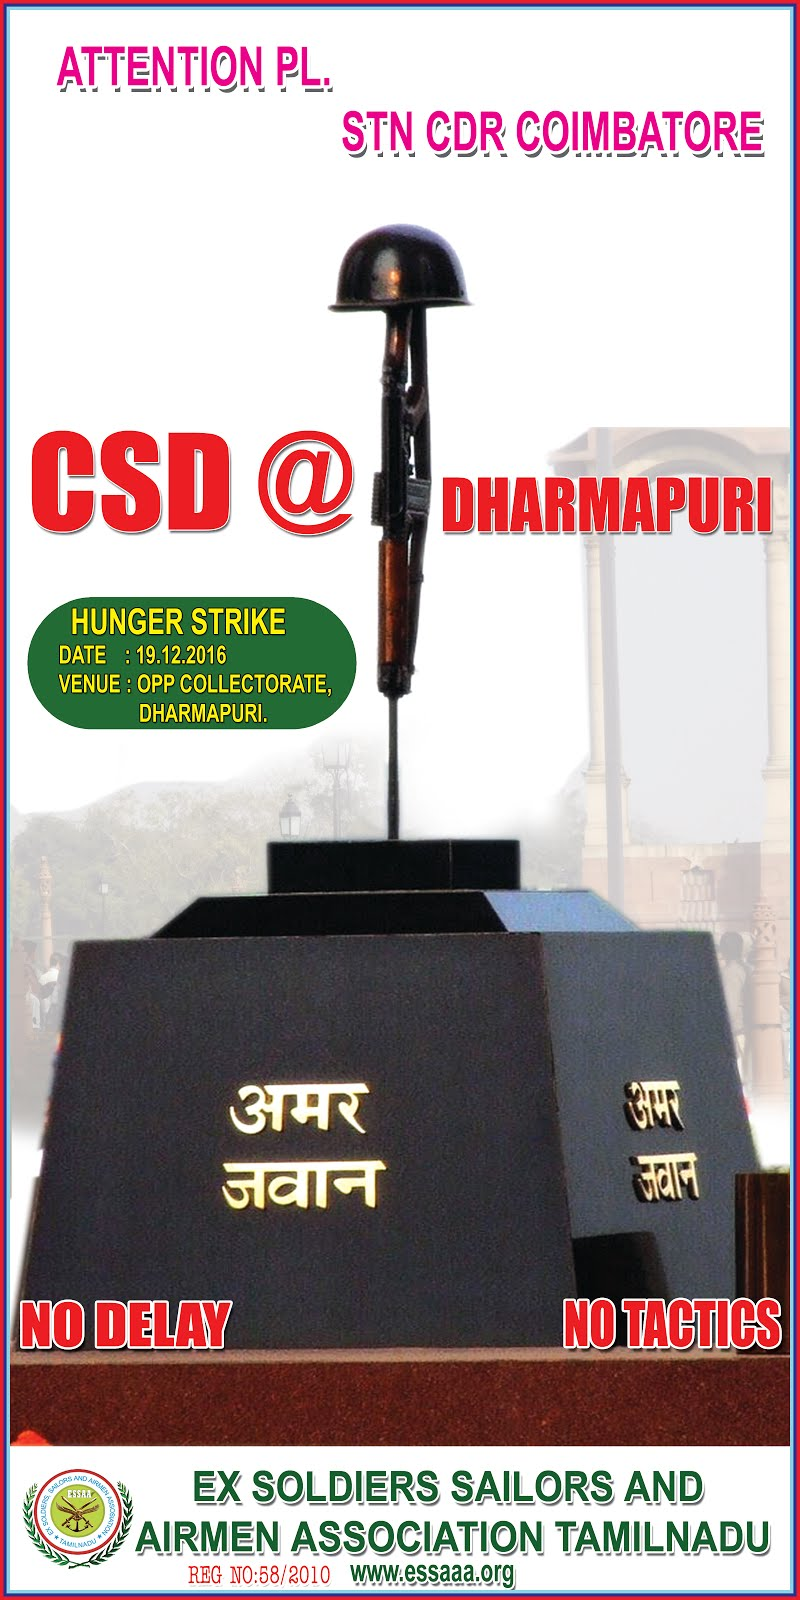 HUNGeR STRIKE FOR CSD @ DPI